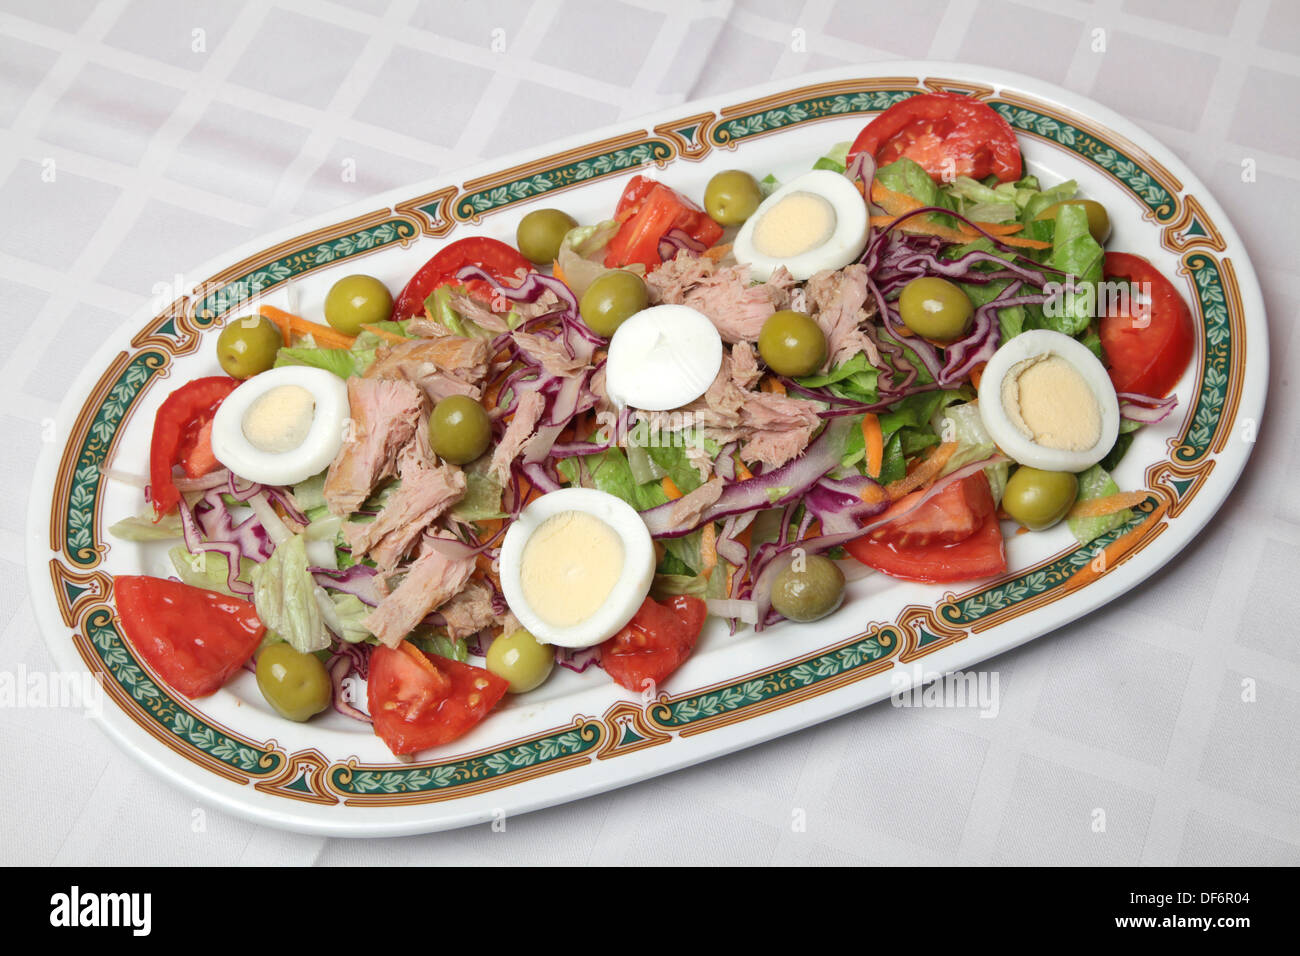 tomato tuna salad eggs fish food fresh gastronomy diet disk health olive mediterranean food culture typical - Stock Image